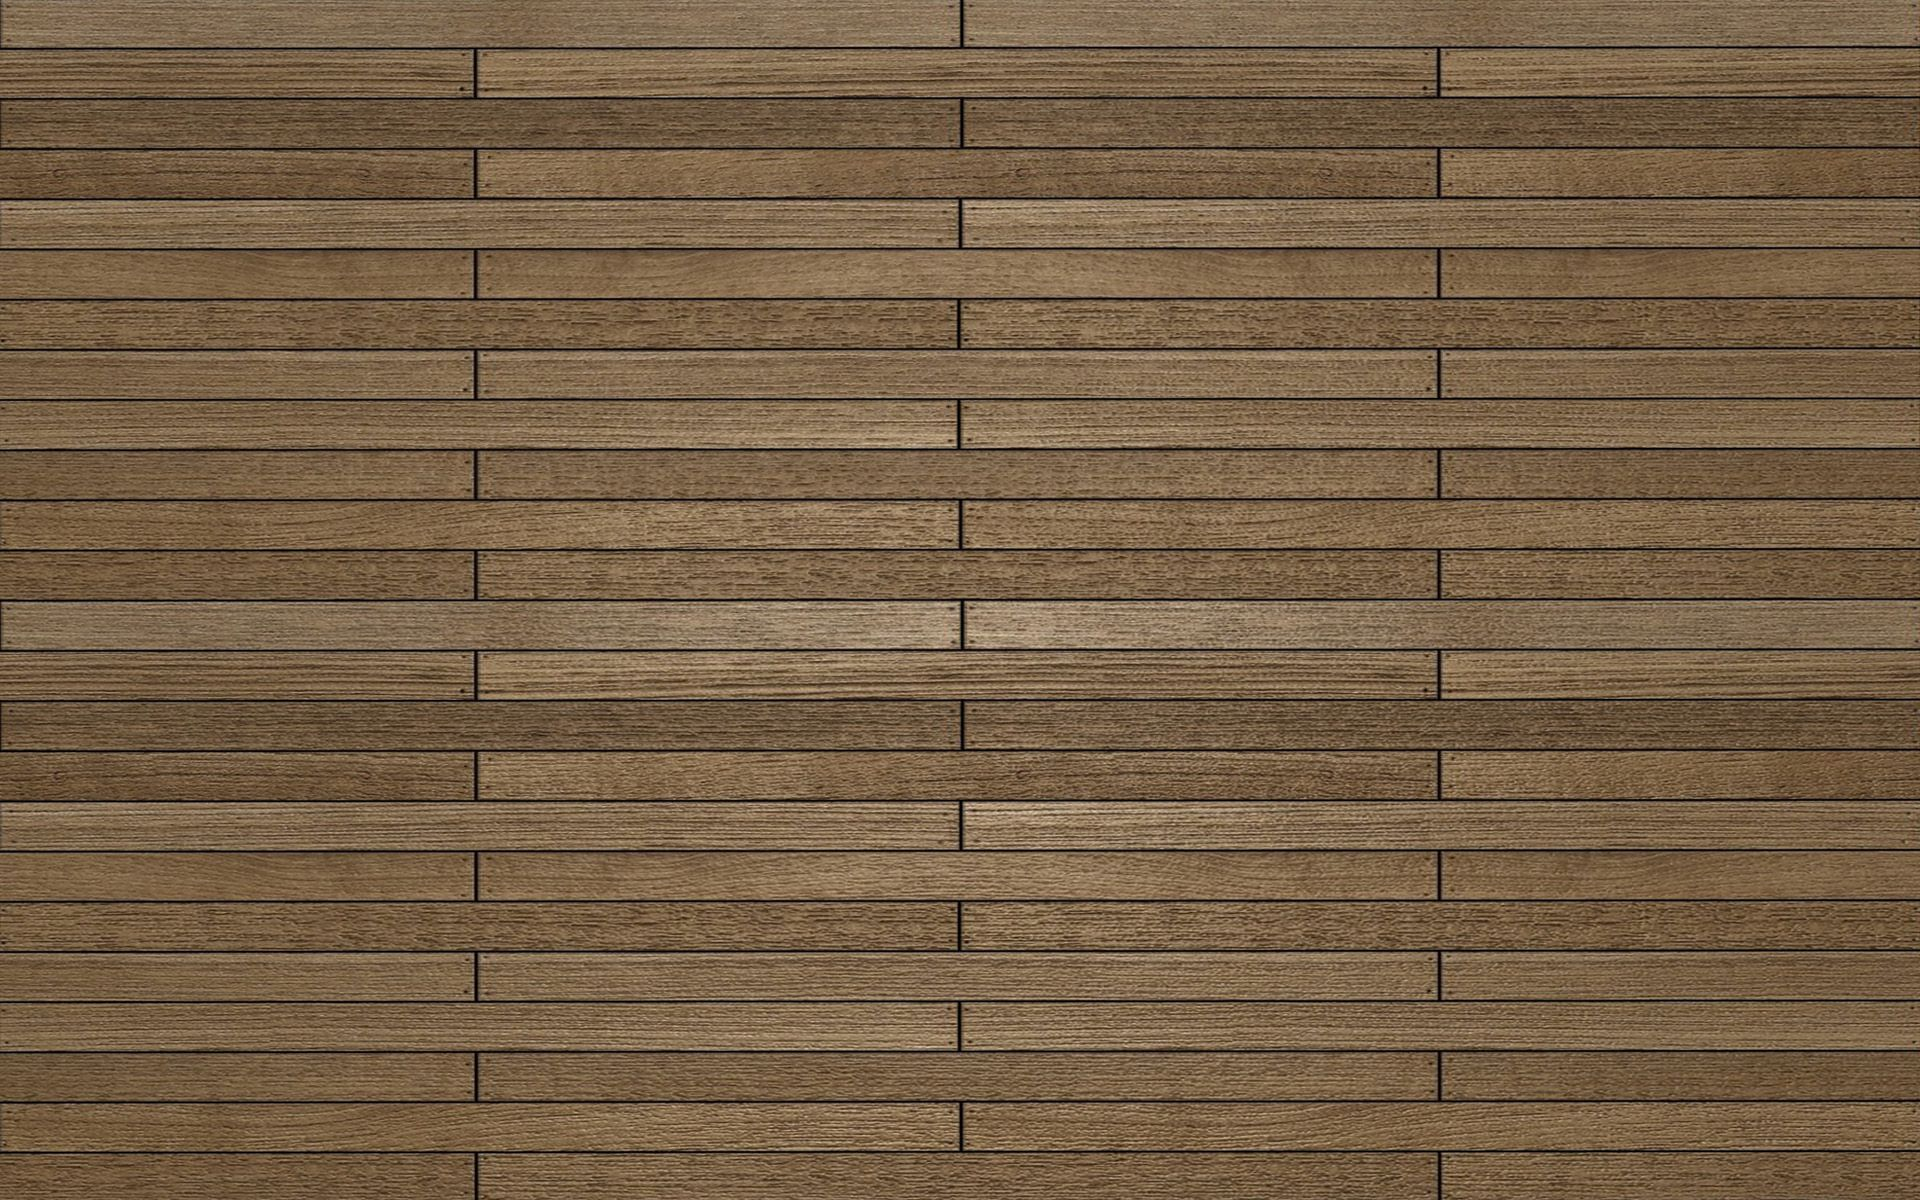 Wood Flooring Background Awesome 31006 MATERIAL TEXTURE